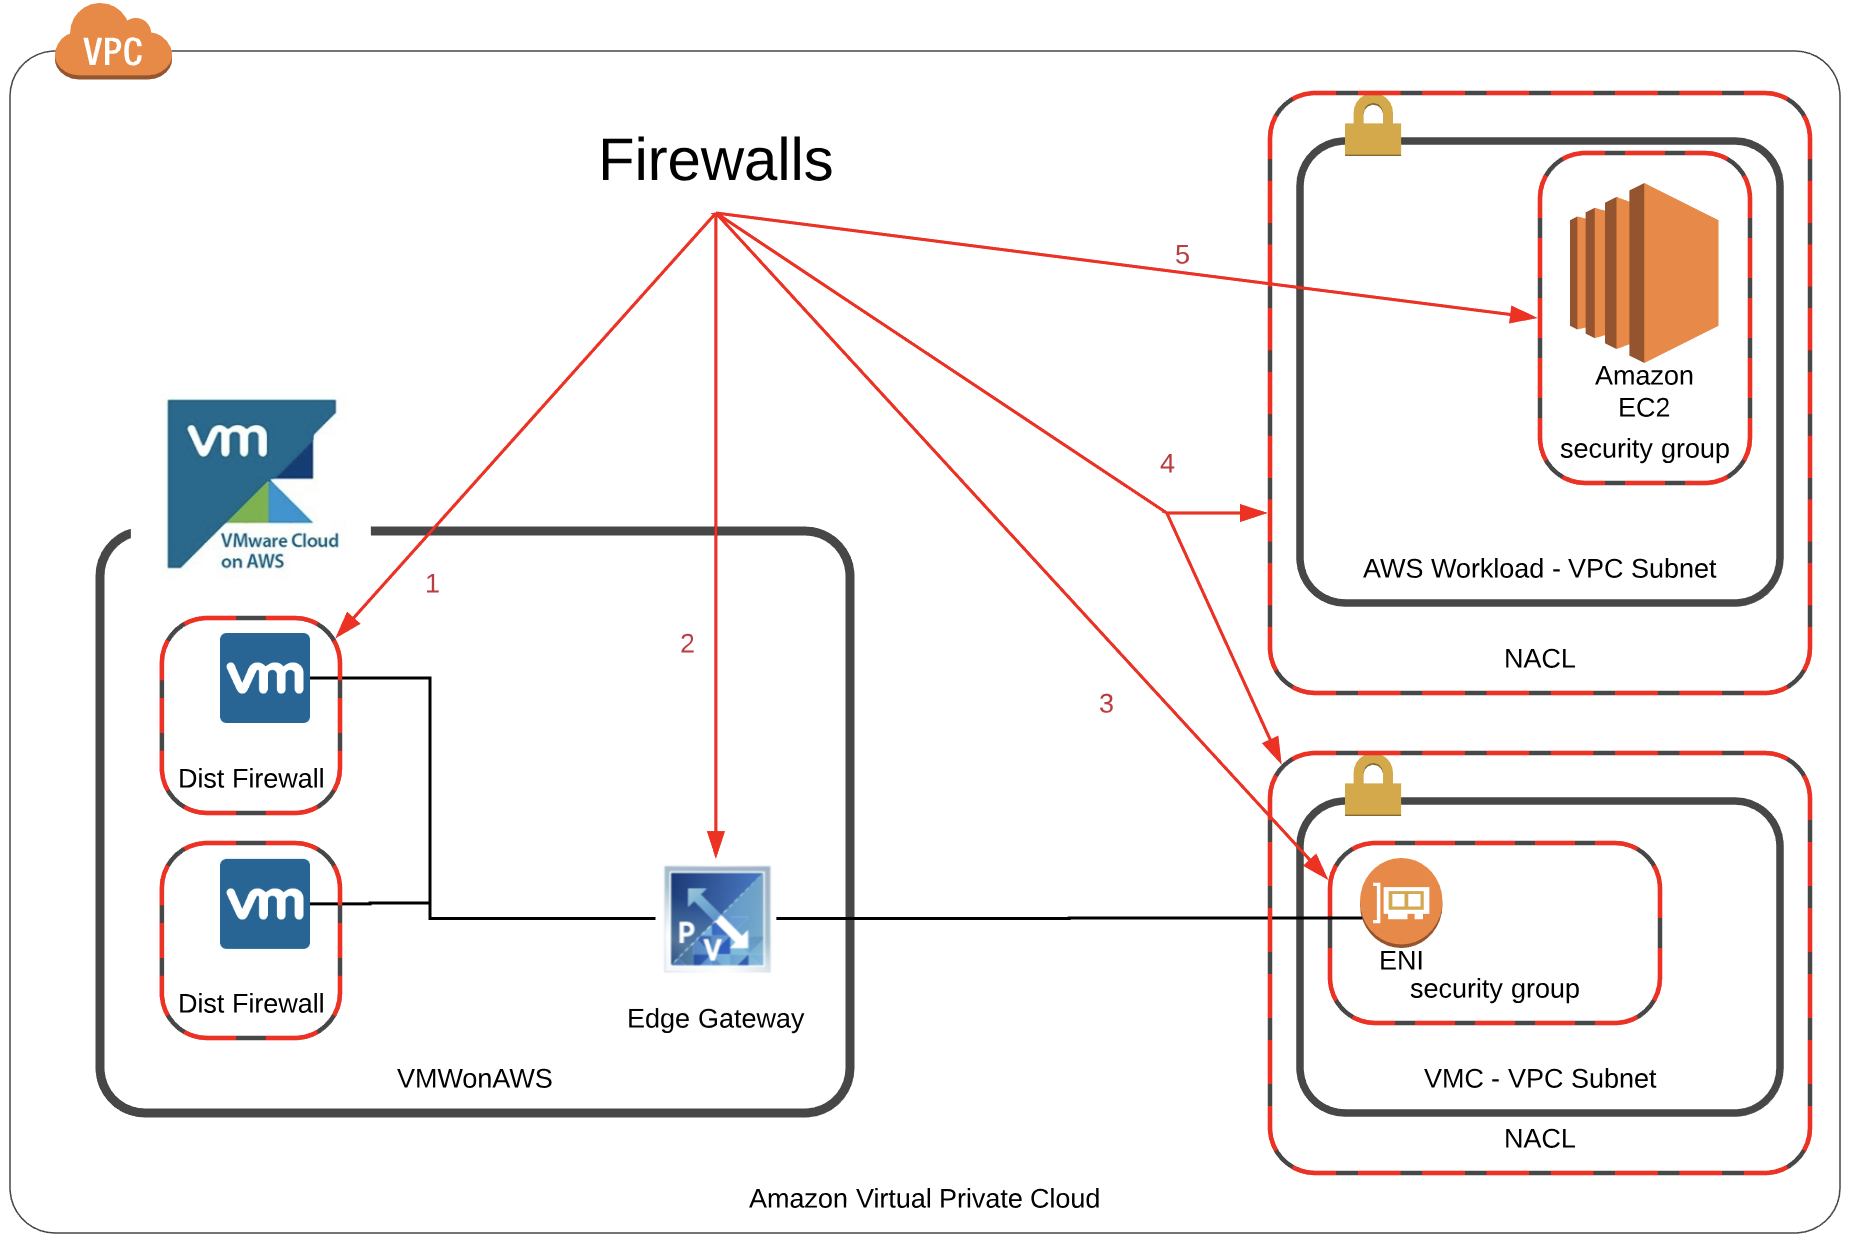 VMware Cloud on AWS Firewalls Overview - The IT Hollow